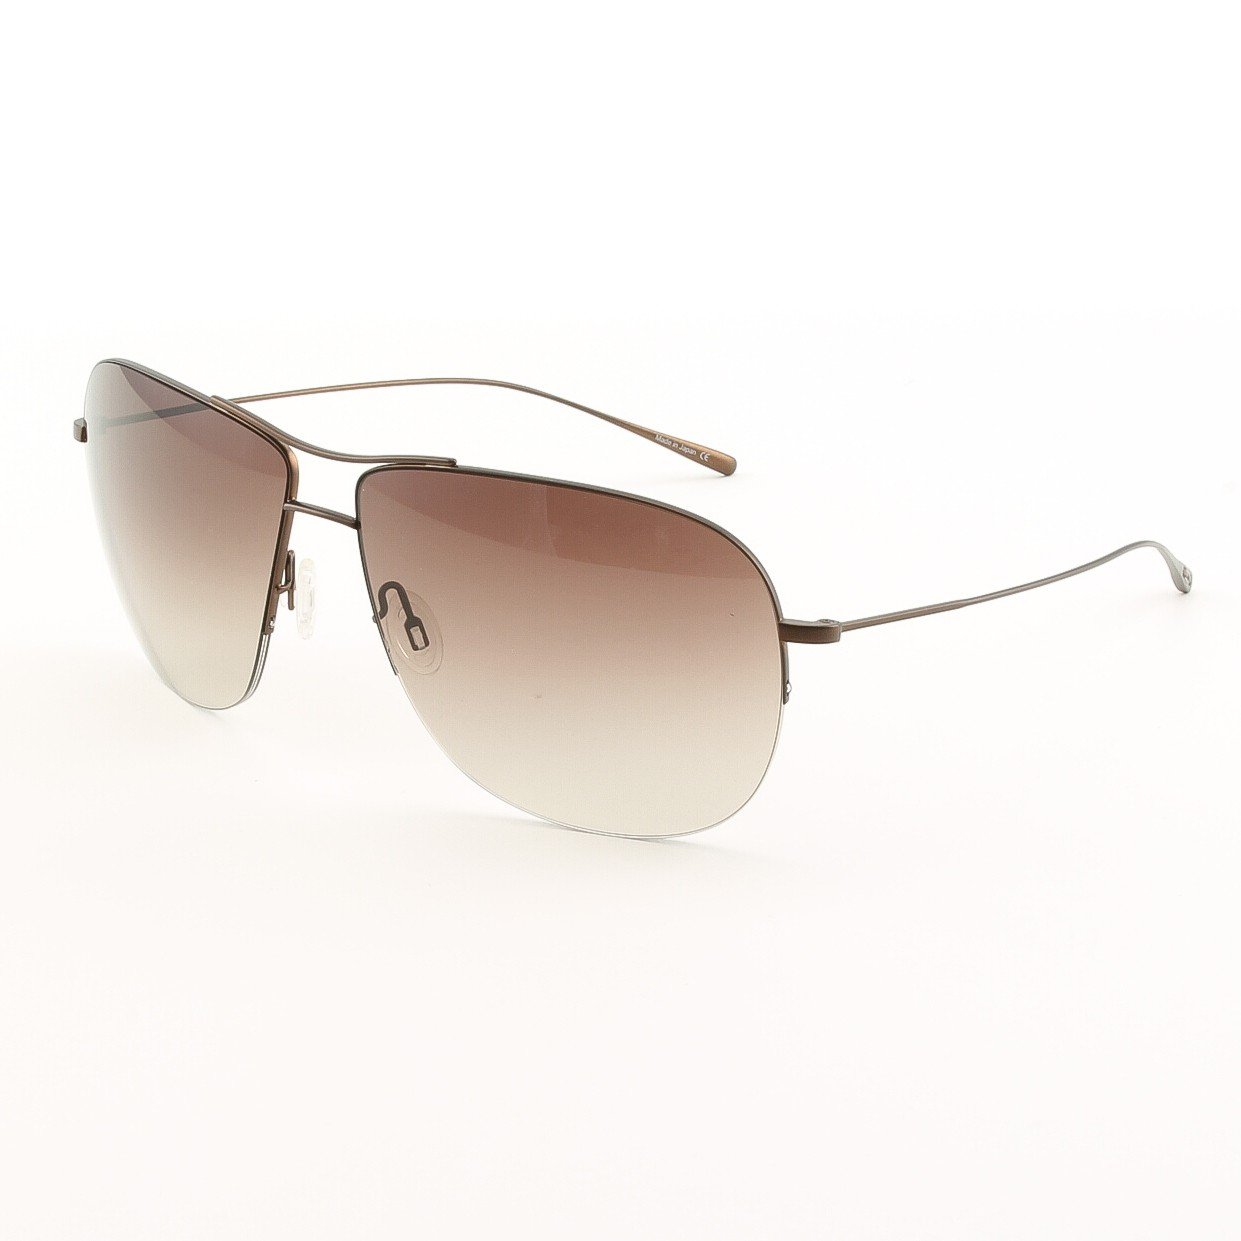 Oliver Peoples 1111ST 501913 Welles Sunglasses Walnut with Spice Brown Gradient Lens